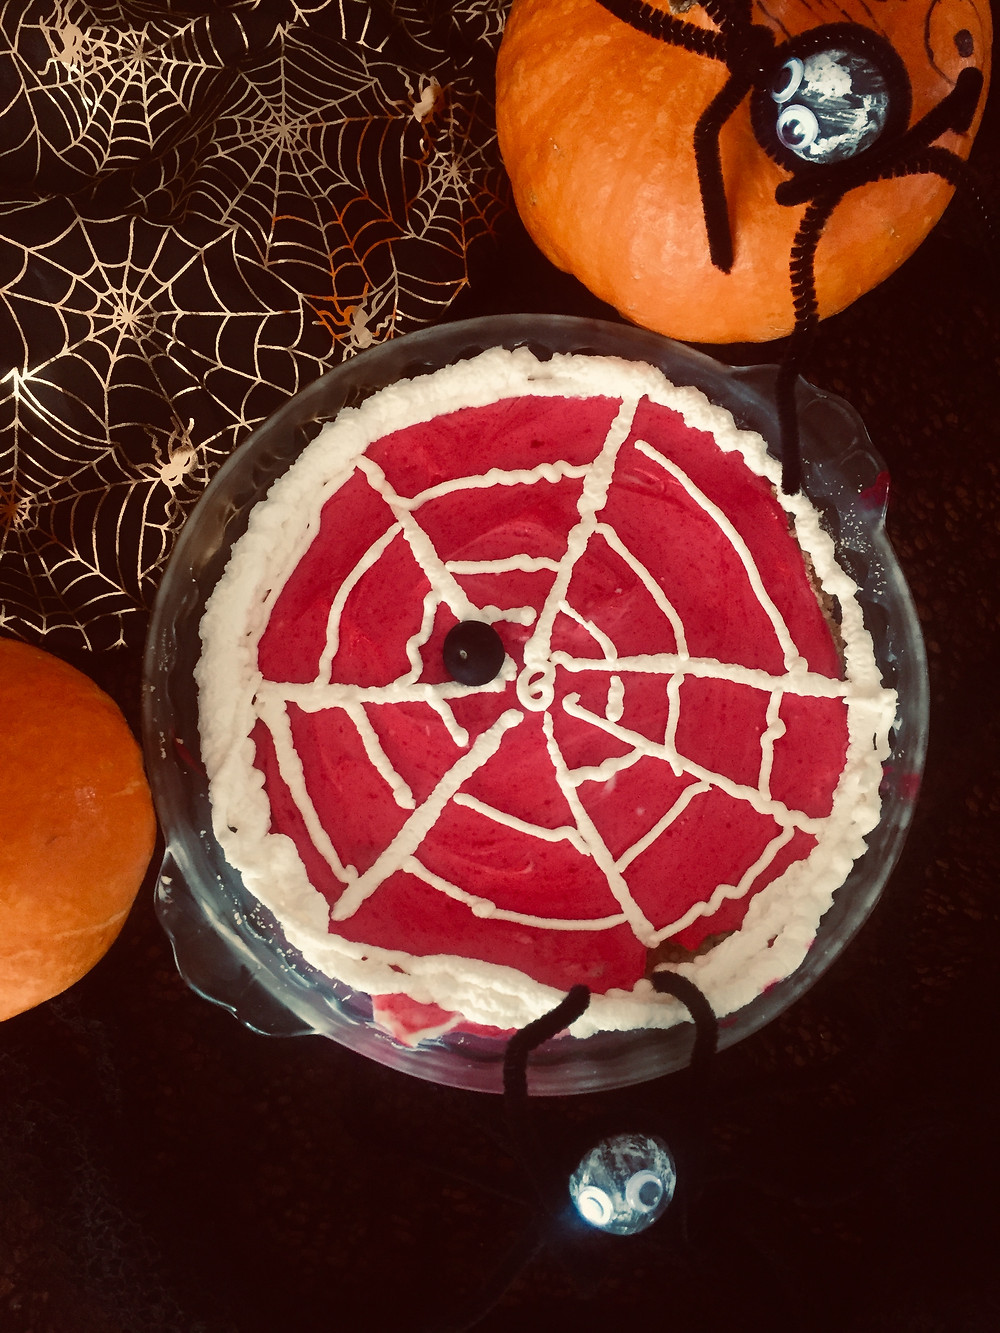 No bake easy fridge tart made with yogurt. Made to look like spider web, easy haloween dessert idea